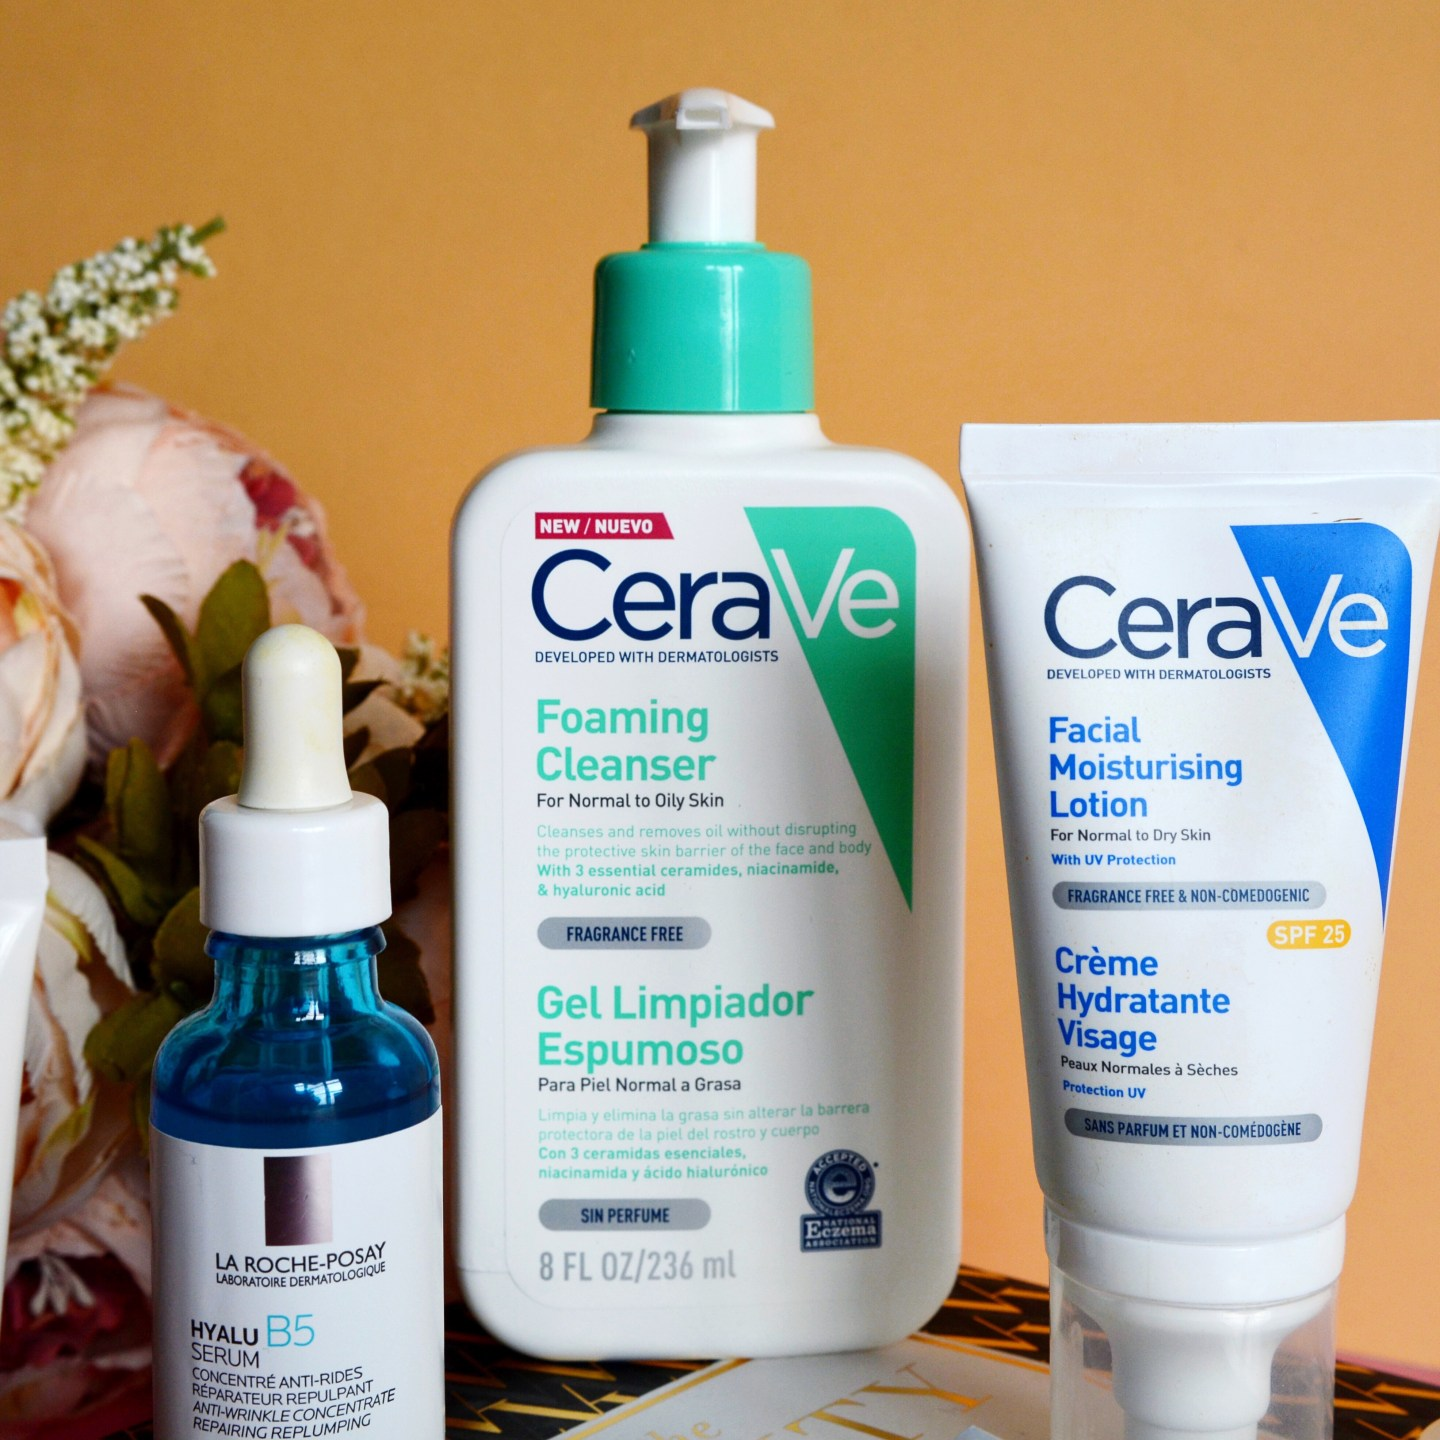 My current skincare routine: CeraVe comes to the UK! (rosacea, sensitive skin)